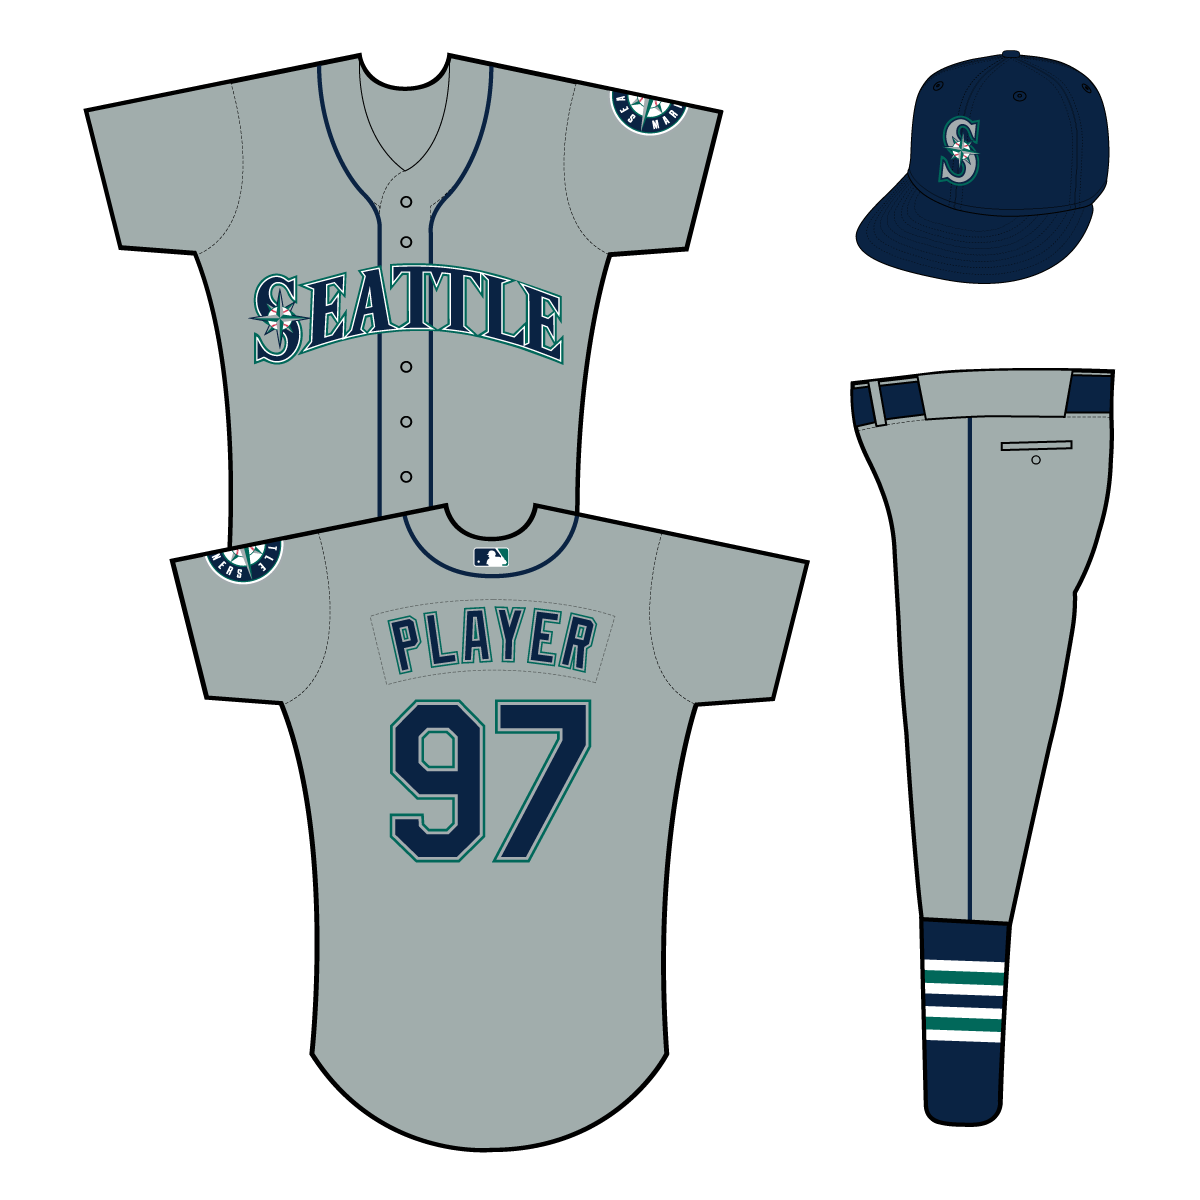 Seattle Mariners Uniform Road Uniform (2015-Pres) - Seattle in navy with white and green outlines on a grey uniform with navy piping, primary logo patch on left sleeve SportsLogos.Net